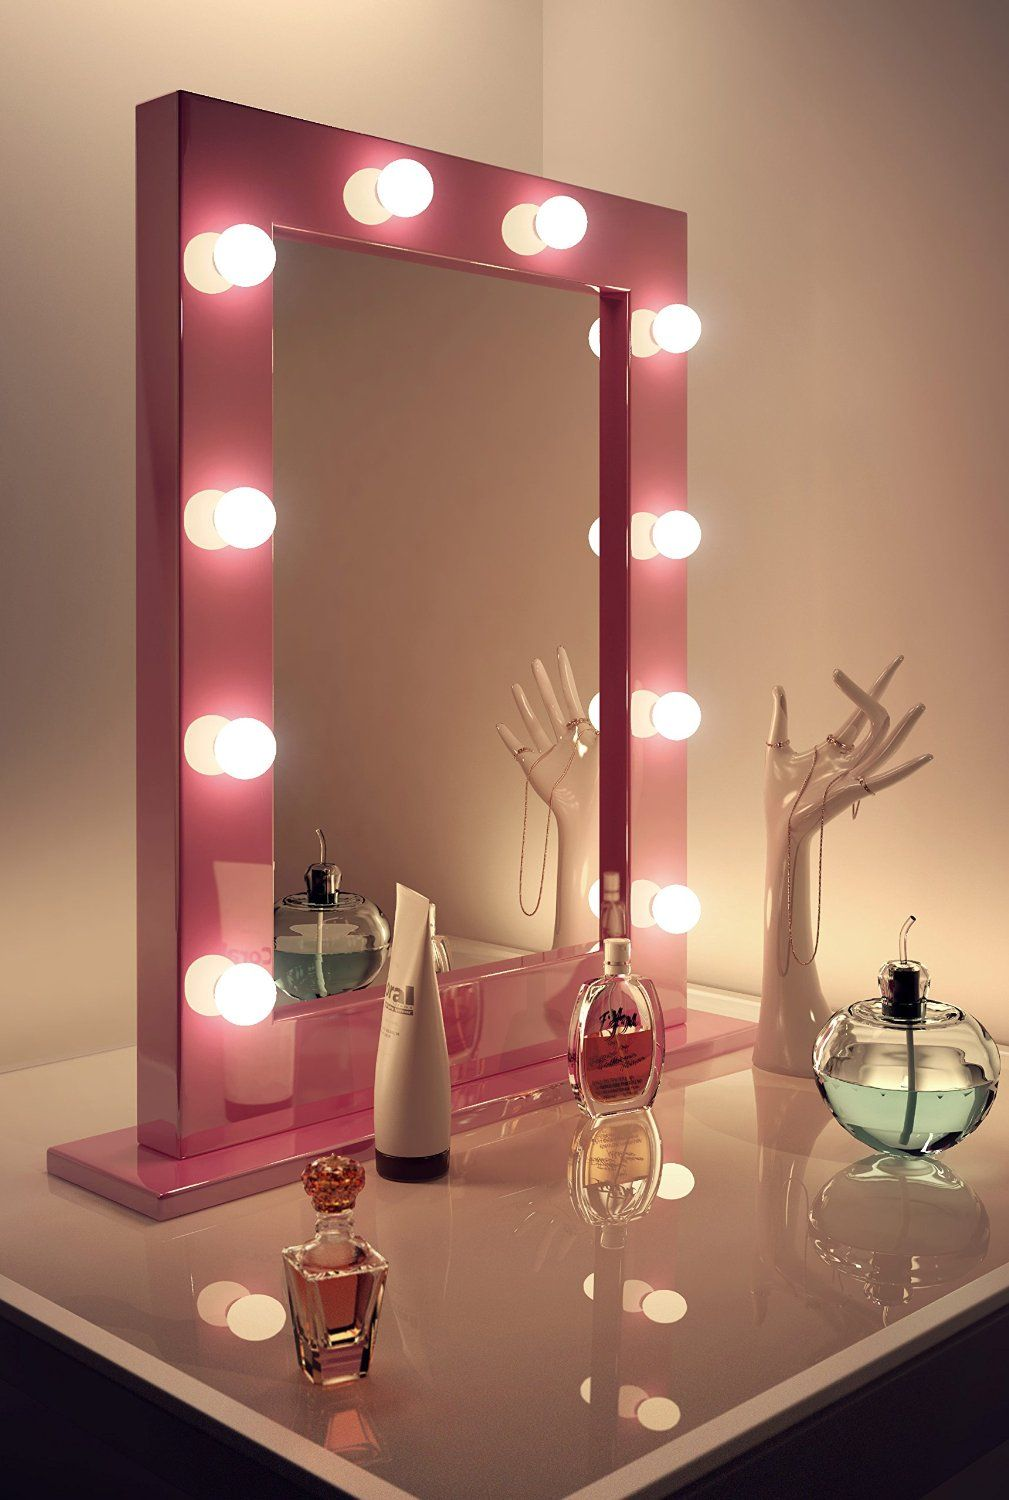 Bathroom Mirror Lights Amazon pink hollywood make up theatre dressing room mirror k153: amazon